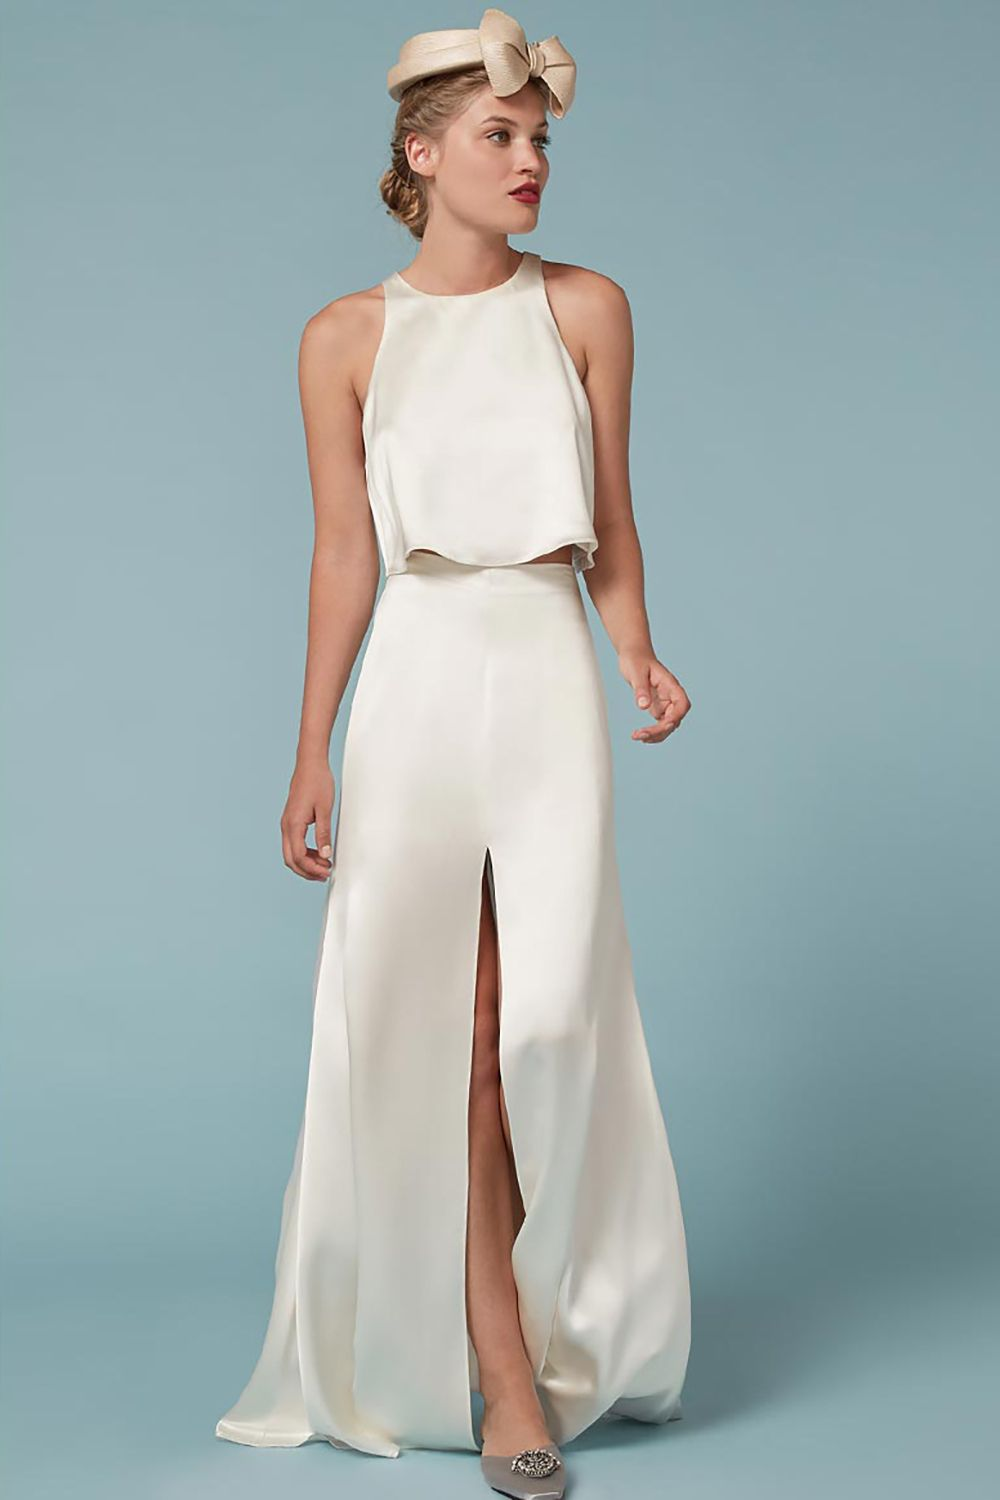 """<p>This two-piece creates the ultimate modern-meets-vintage vibe, and can be split up for future wear.</p><p>Gemini Two Piece, $588; <a href=""""https://www.thereformation.com/products/gemini-two-piece-ivory """" target=""""_blank"""">thereformation.com</a></p>"""